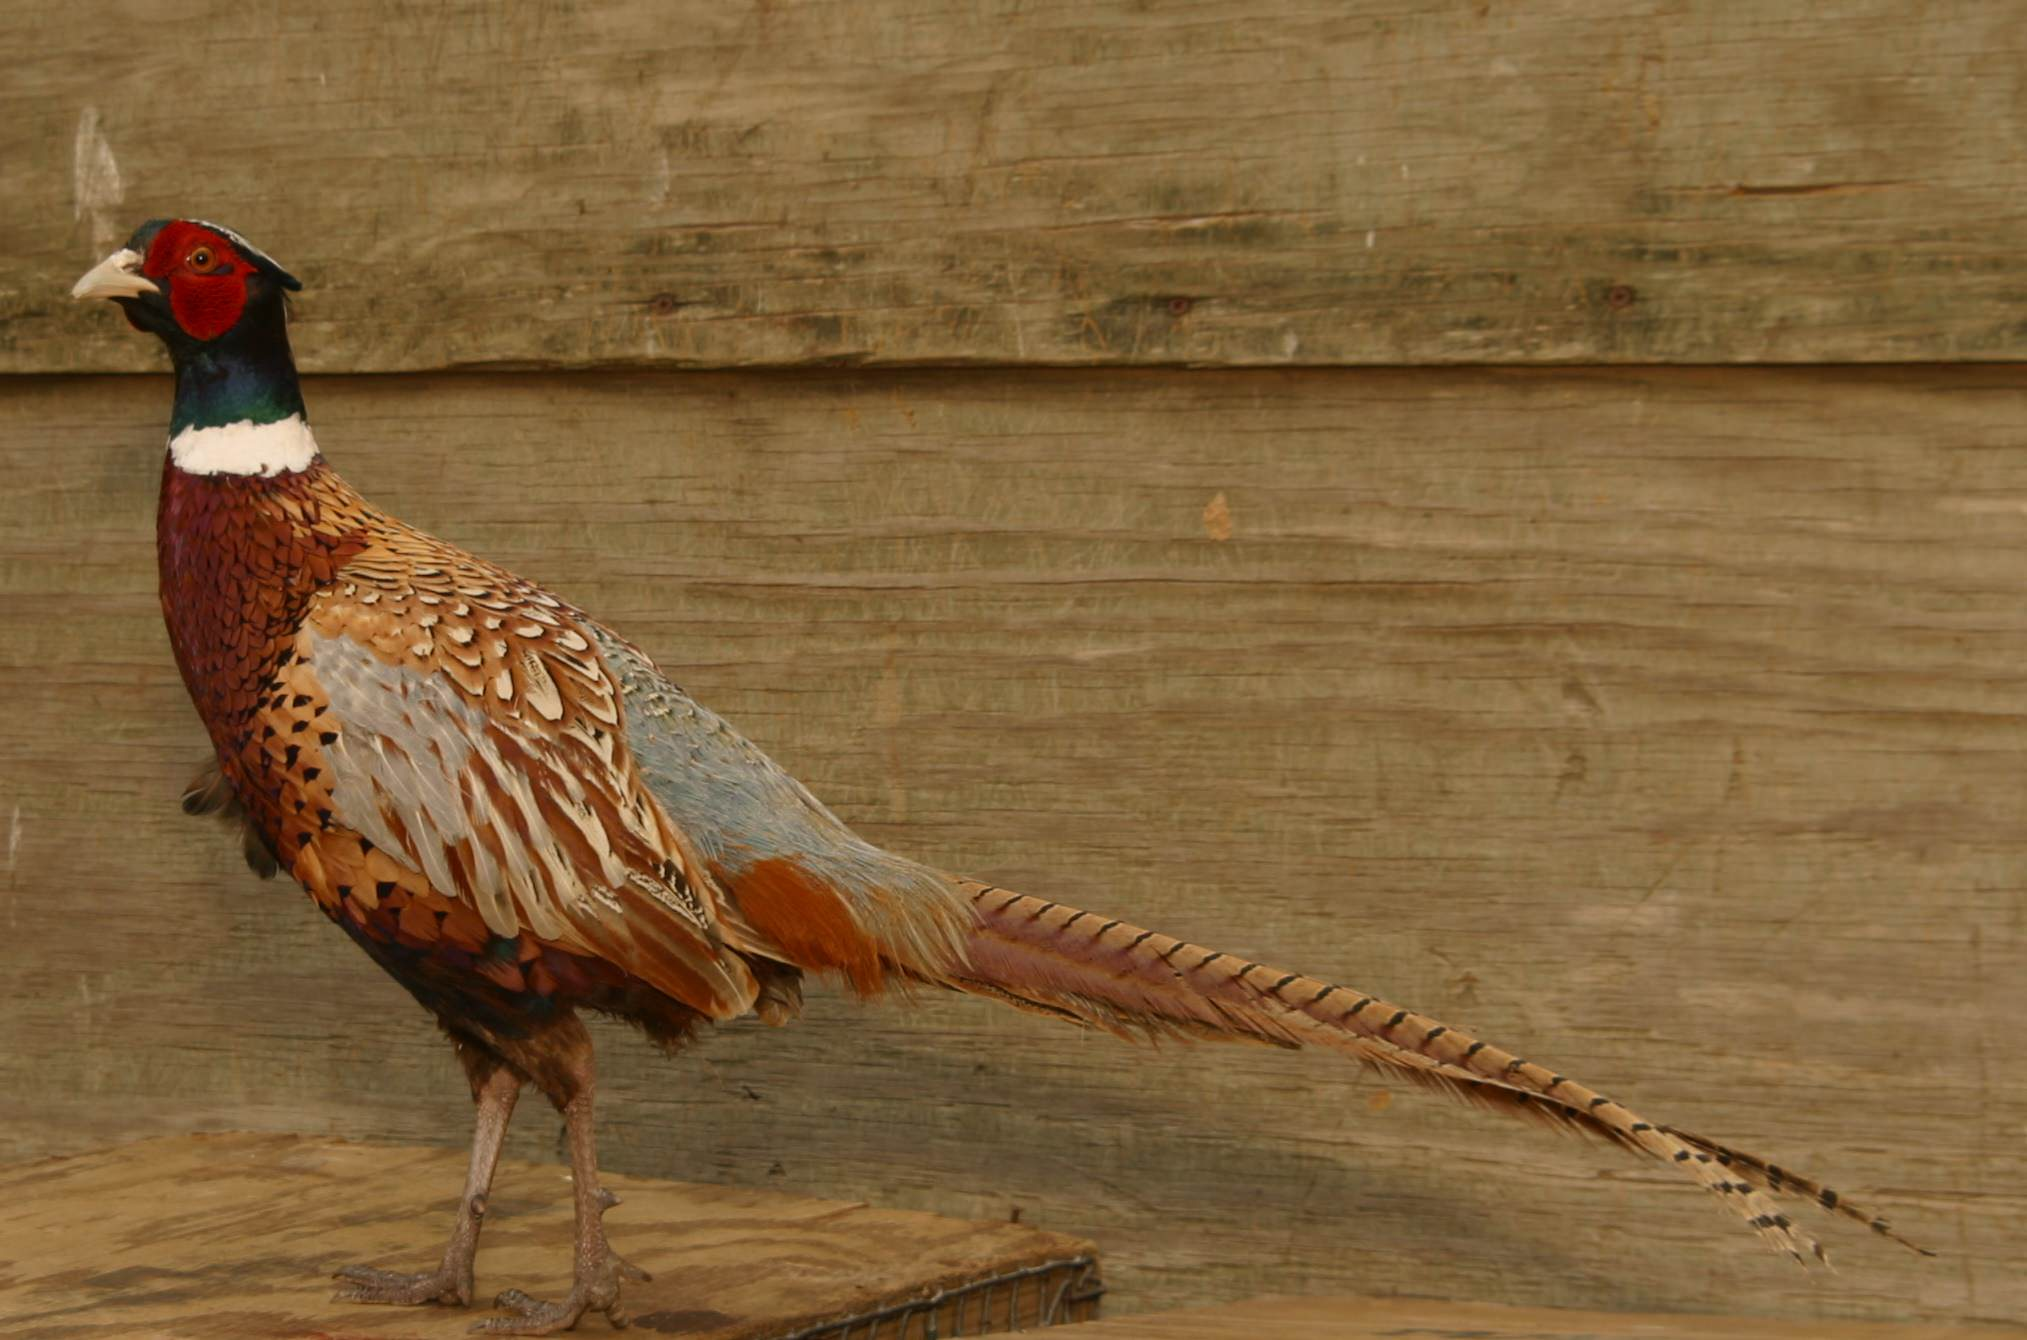 Pheasant Traits Hunters Love to See in the Wild